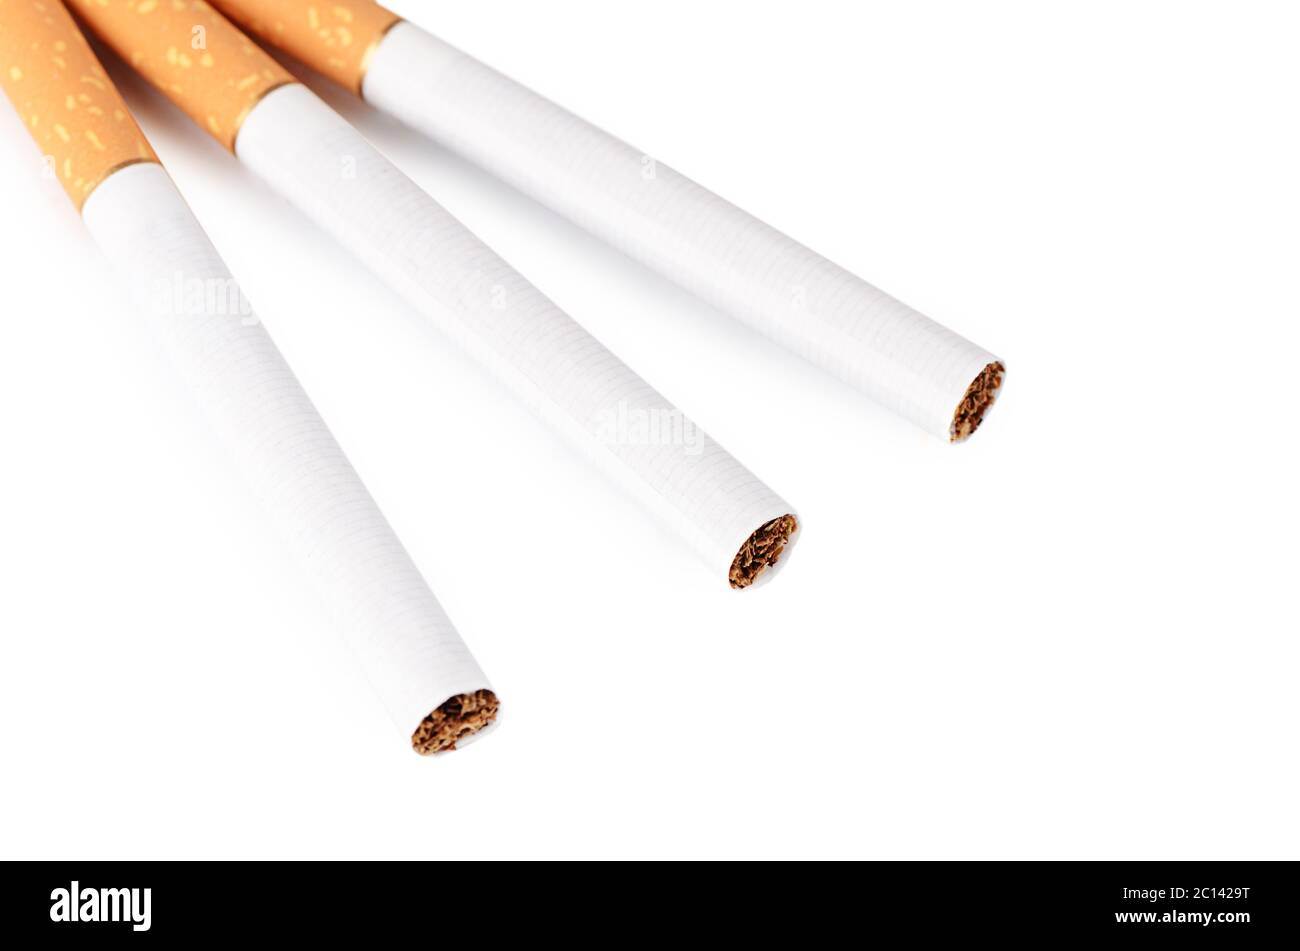 Close Up Tobacco Cigarettes Background Or Texture Stock Photo Alamy